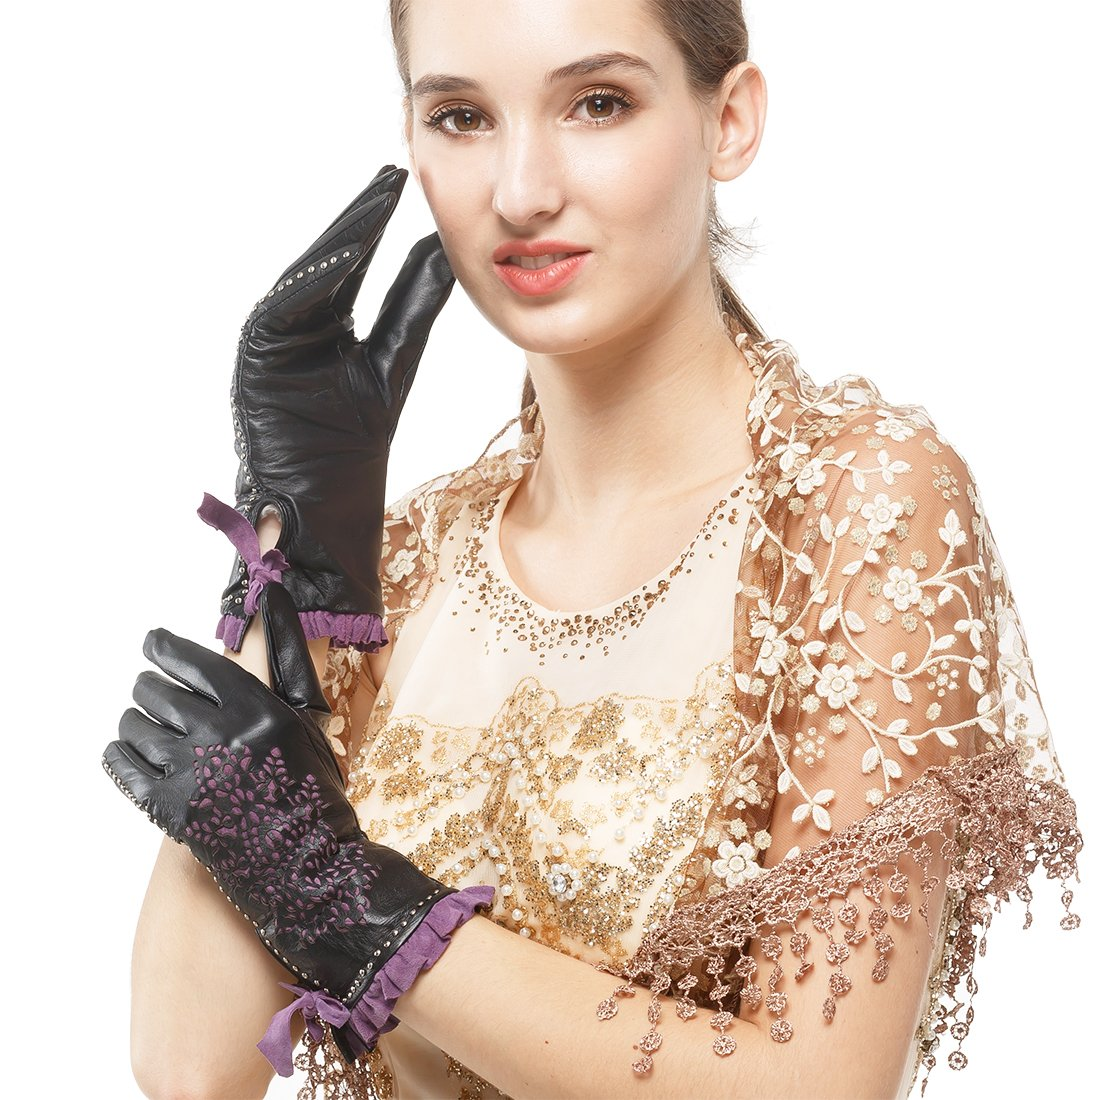 Nappaglo Women's Genuine Nappa Leather Gloves Perforated Winter Warm Short Gloves with Purple Lace (S (Palm Girth:6.5''-7''), Black (Non-Touchscreen)) by Nappaglo (Image #1)